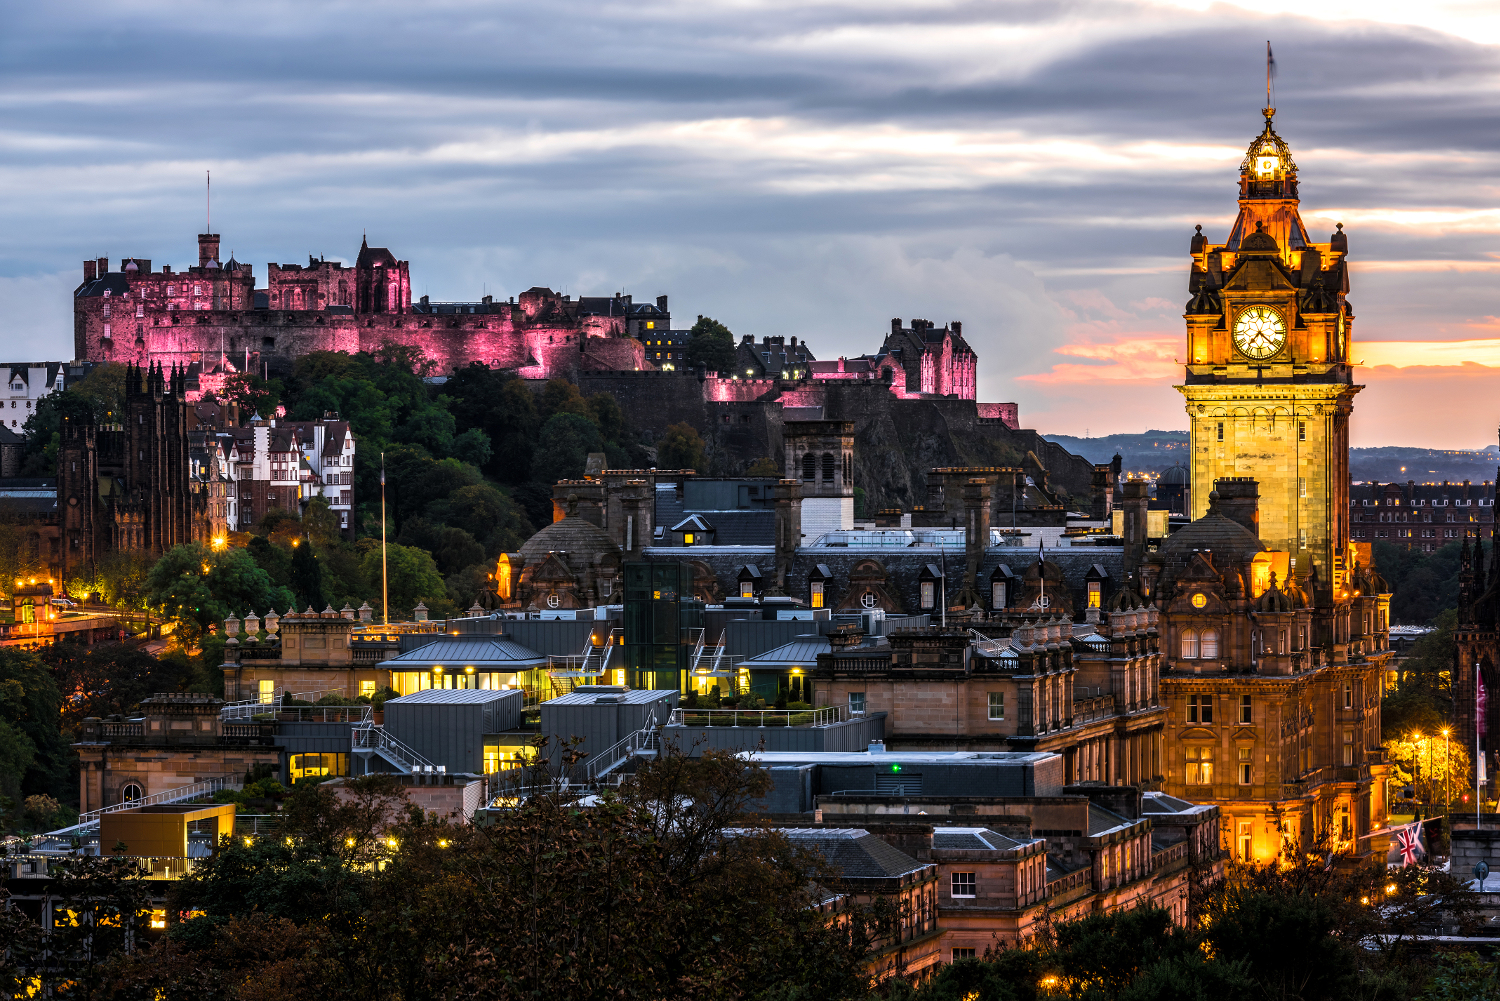 Edinburgh castle and Cityscape at night